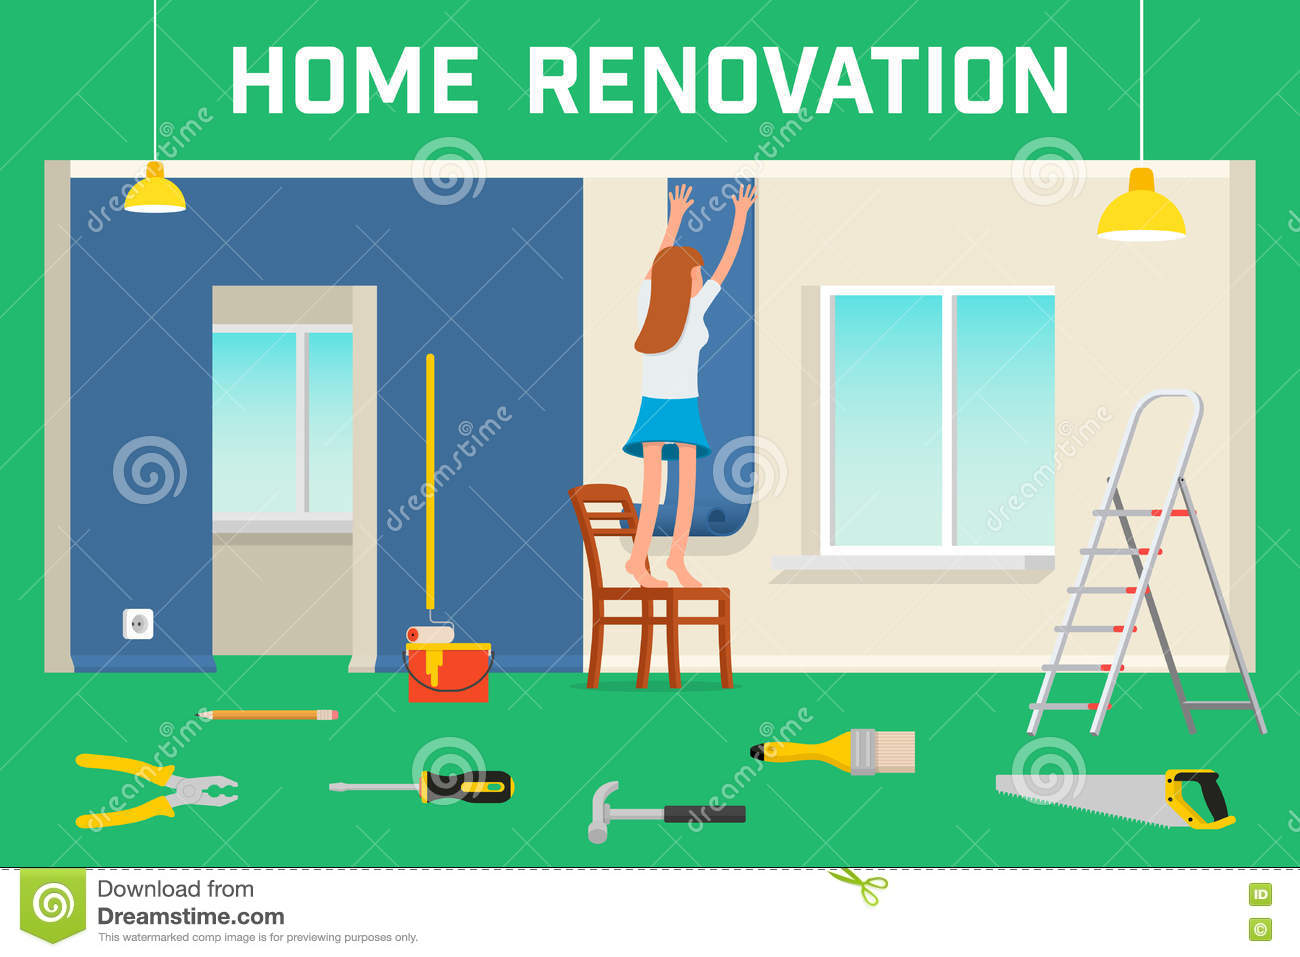 Wallpaper home renovation wallpaper home for Wallpaper home improvement questions